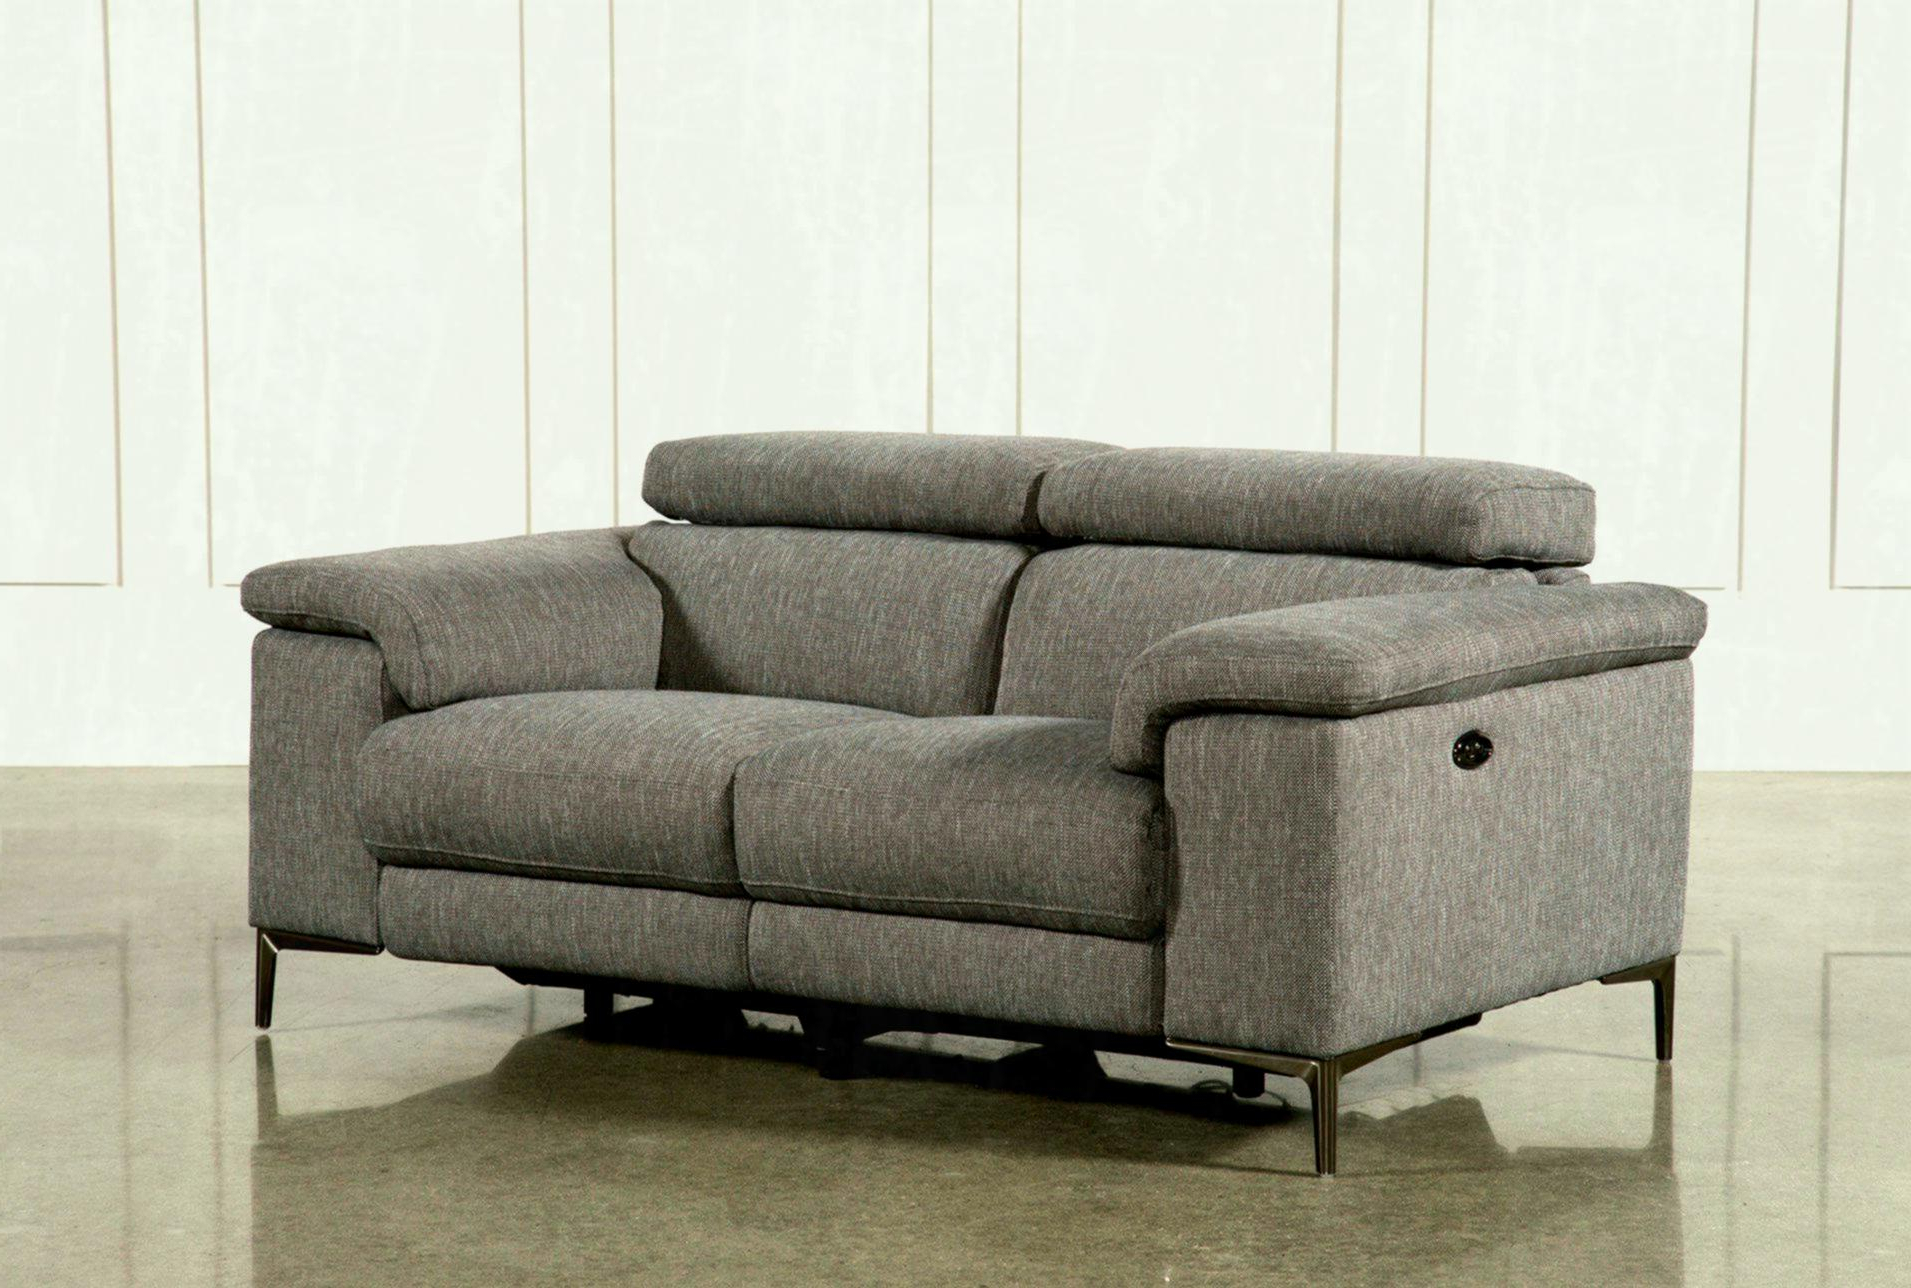 Most Popular Added To Cart Aquarius Light Grey Piece Sectional W Raf Chaise With Regard To Aquarius Dark Grey 2 Piece Sectionals With Raf Chaise (View 15 of 20)